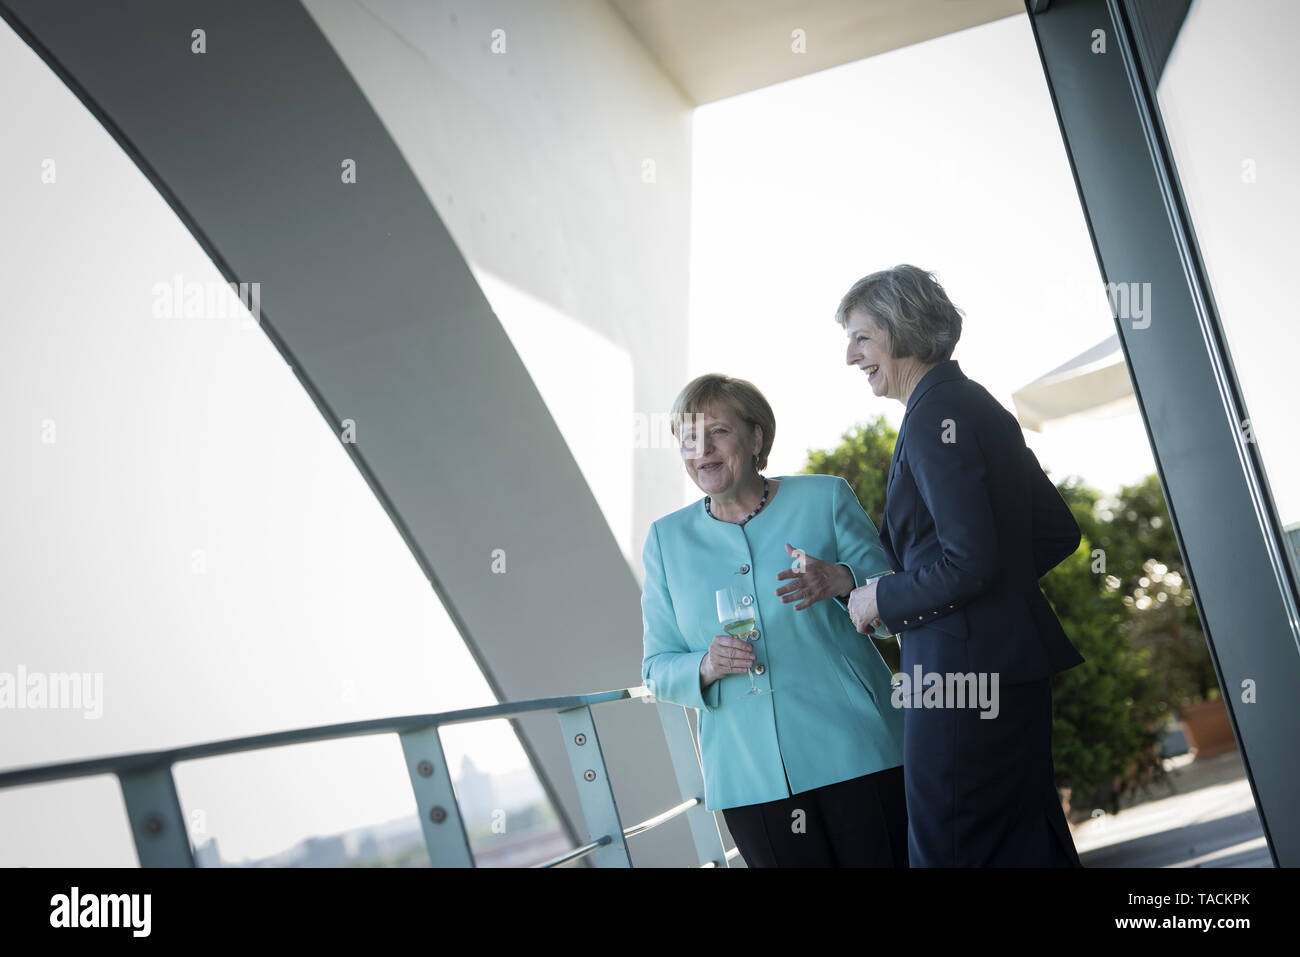 Berlin, Germany. 20th July, 2016. HANDOUT - A handout picture made available by the German Federal Government (Bundesregierung) shows German Chancellor Angela Merkel (L) and new British Prime Minister Theresa May holding wine glasses during their meeting in the Federal Chancellery in Berlin, Germany, 20 July 2016. Credit: Guido Bergmann/Bundesregierung/dpa (ATTENTION EDITORS: EDITORIAL USE ONLY IN CONNECTION WITH CURRENT REPORTING/MANDATORY CREDITS: 'Guido Bergmann/Bundesregierung/dpa') | usage worldwide/dpa/Alamy Live News - Stock Image